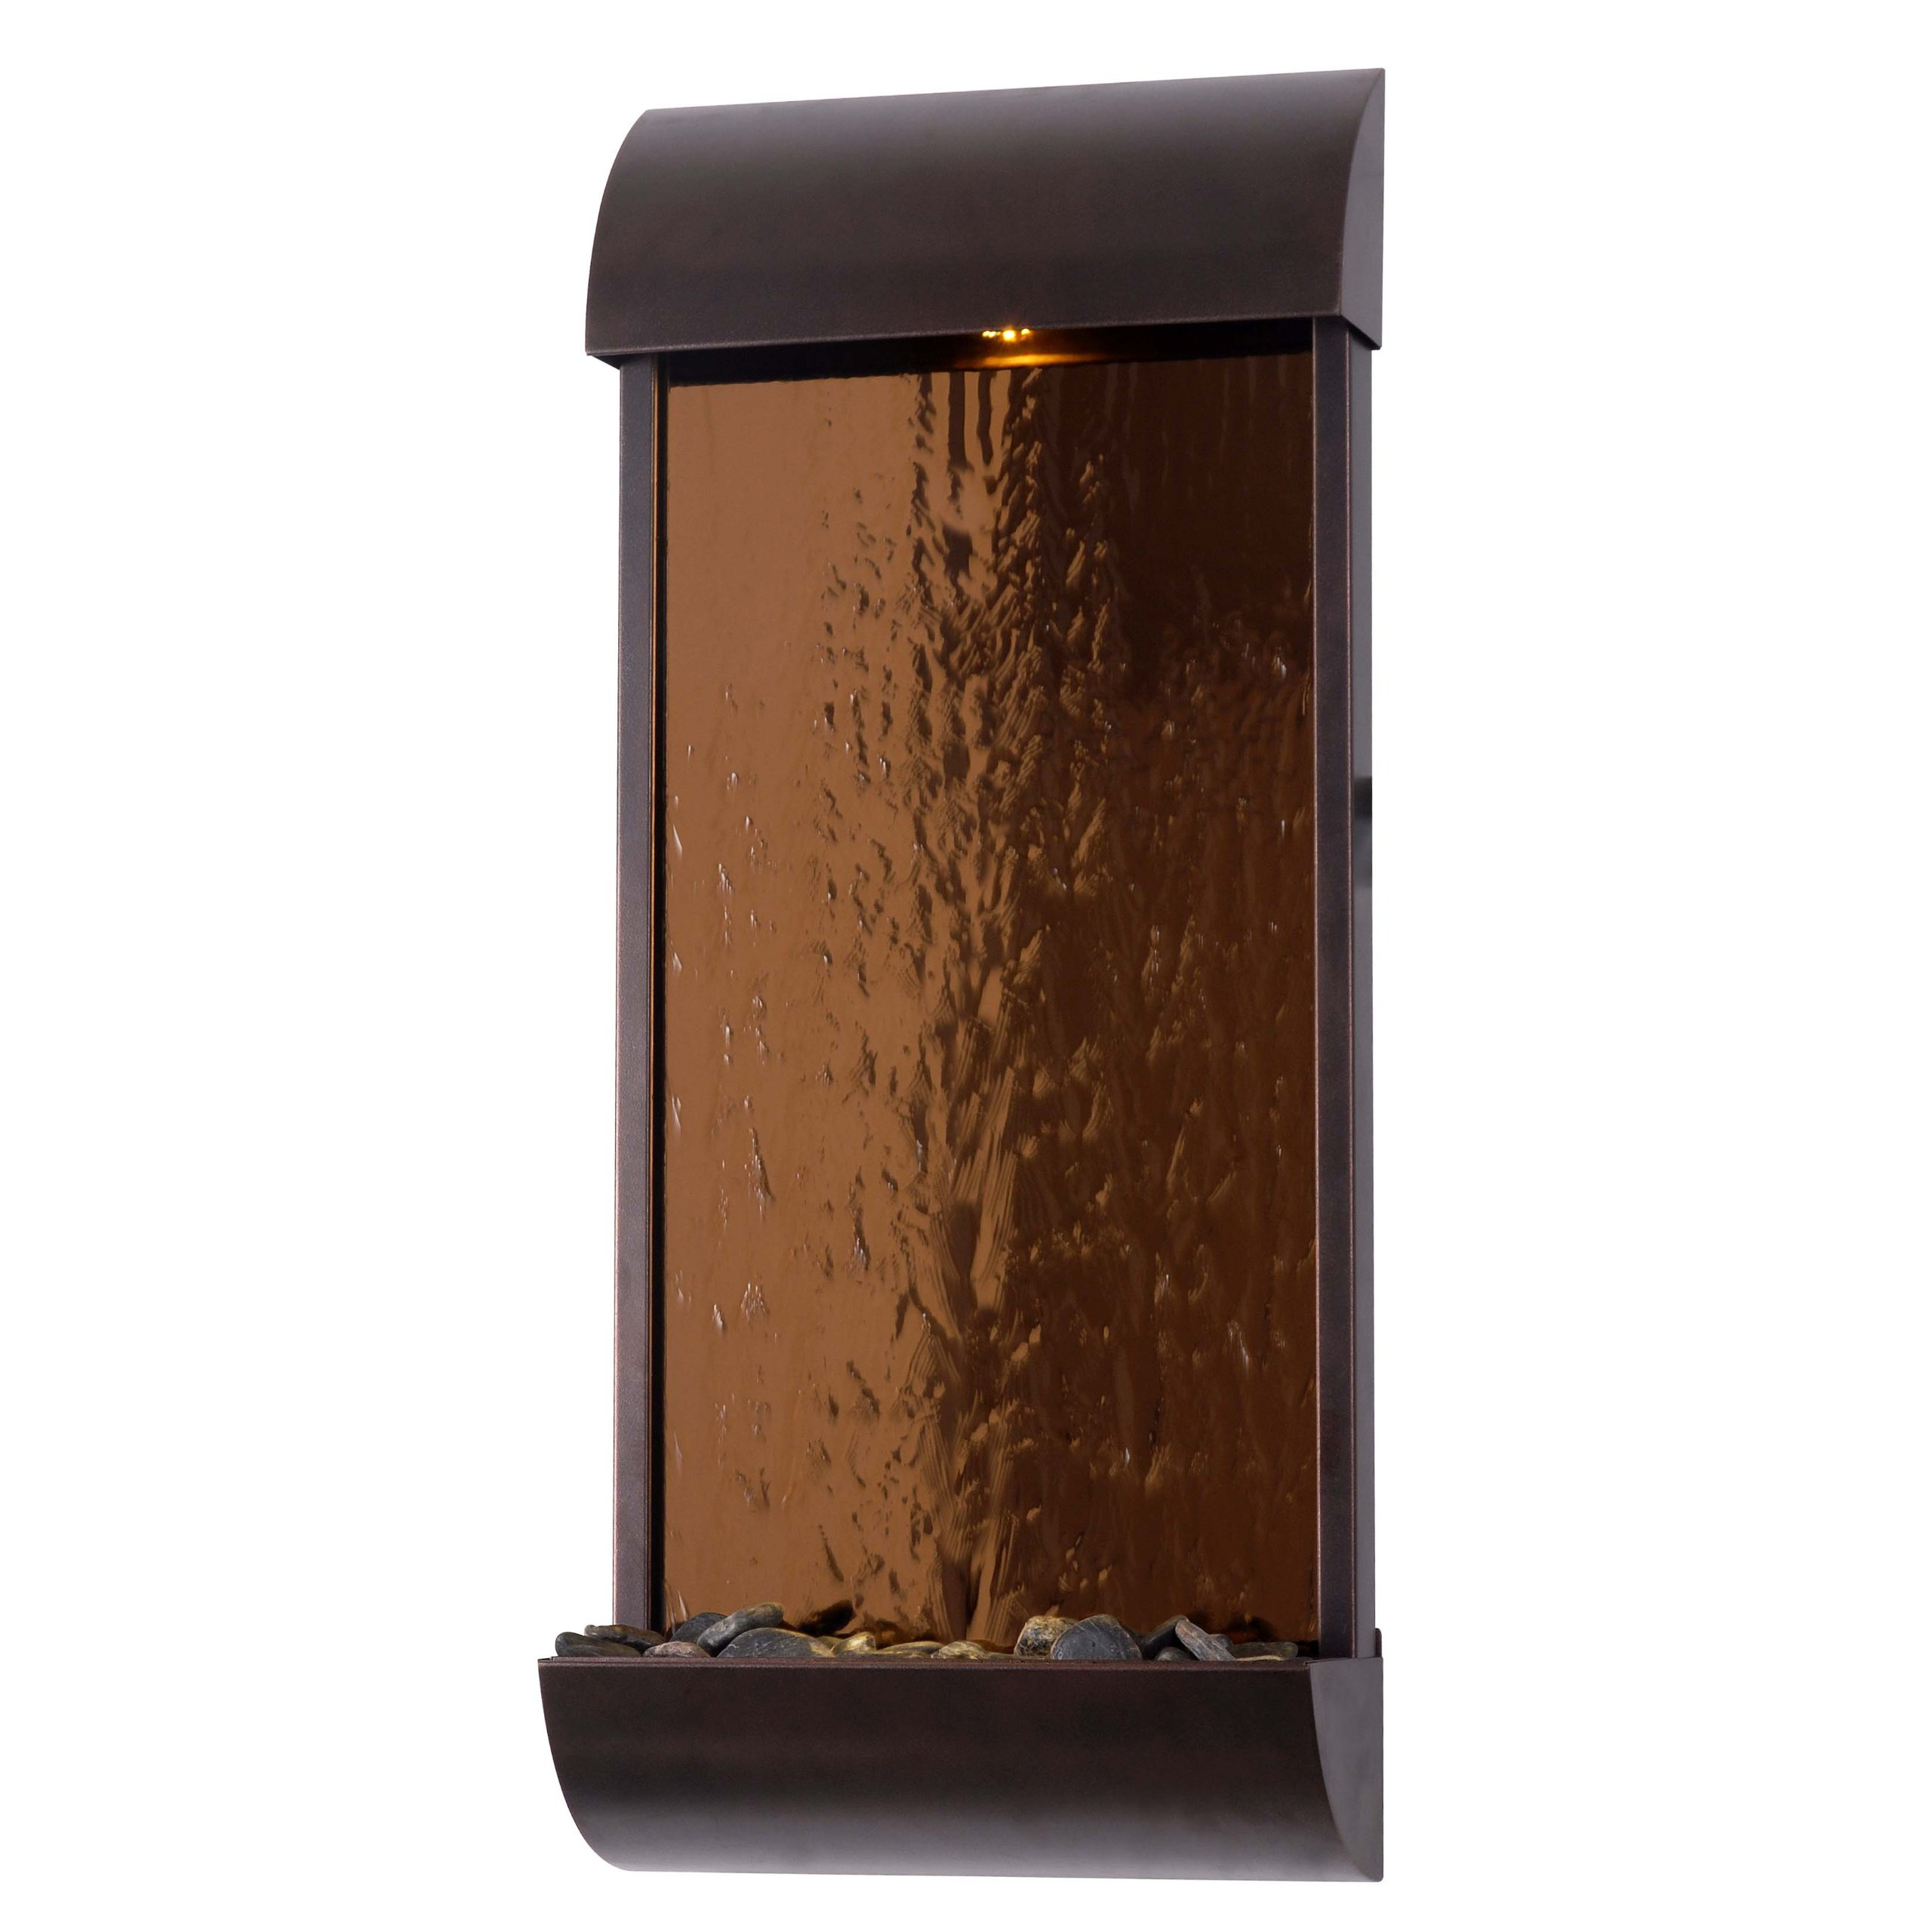 Kenroy Home 50048BRZ Aspen Wall Fountain, Bronze Finish with Copper Mirrored Face by Kenroy Home